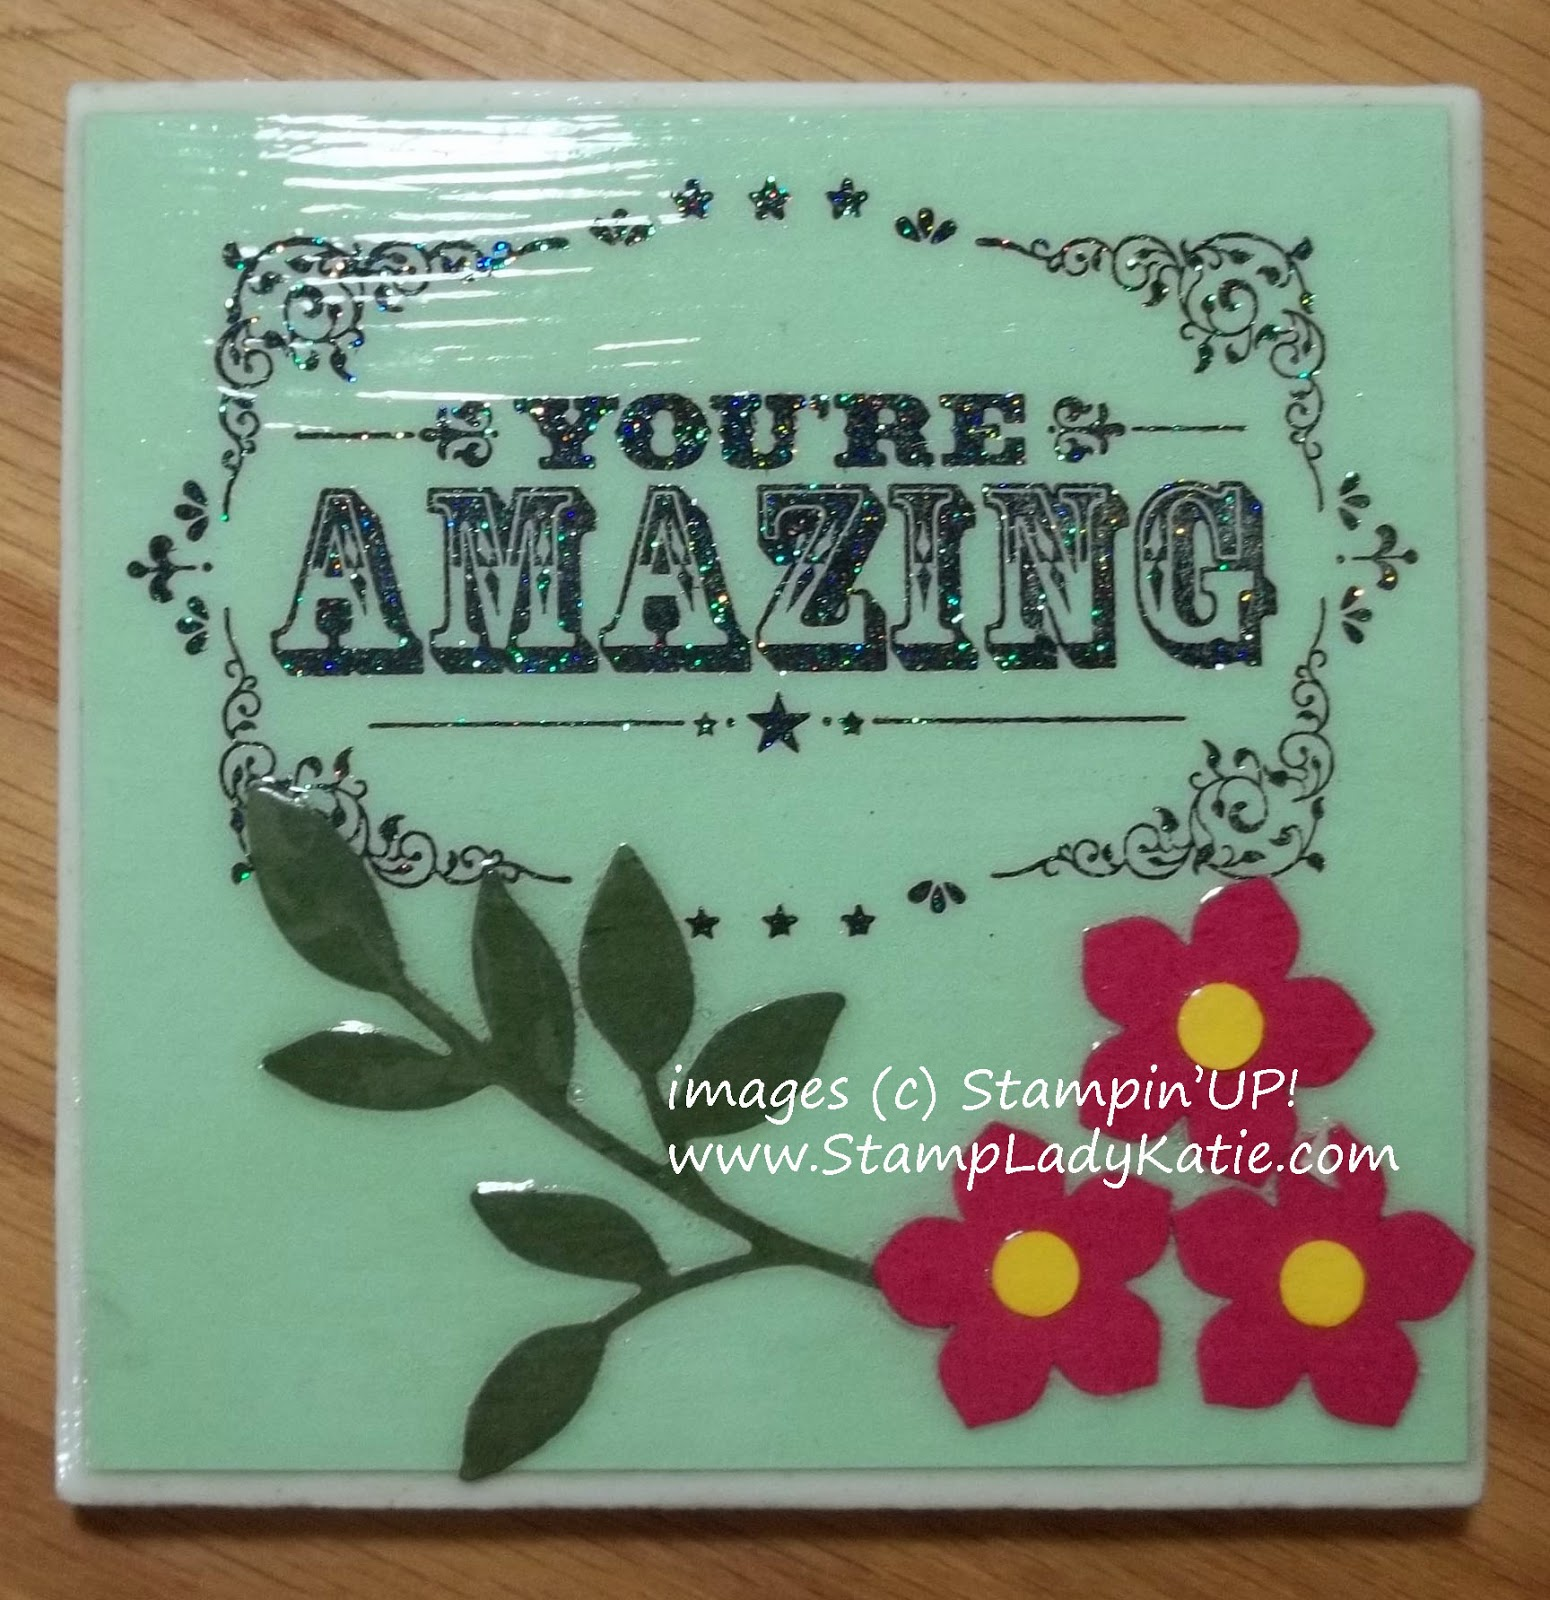 Tile Coaster with a punch art flower and Modge Podge Finish